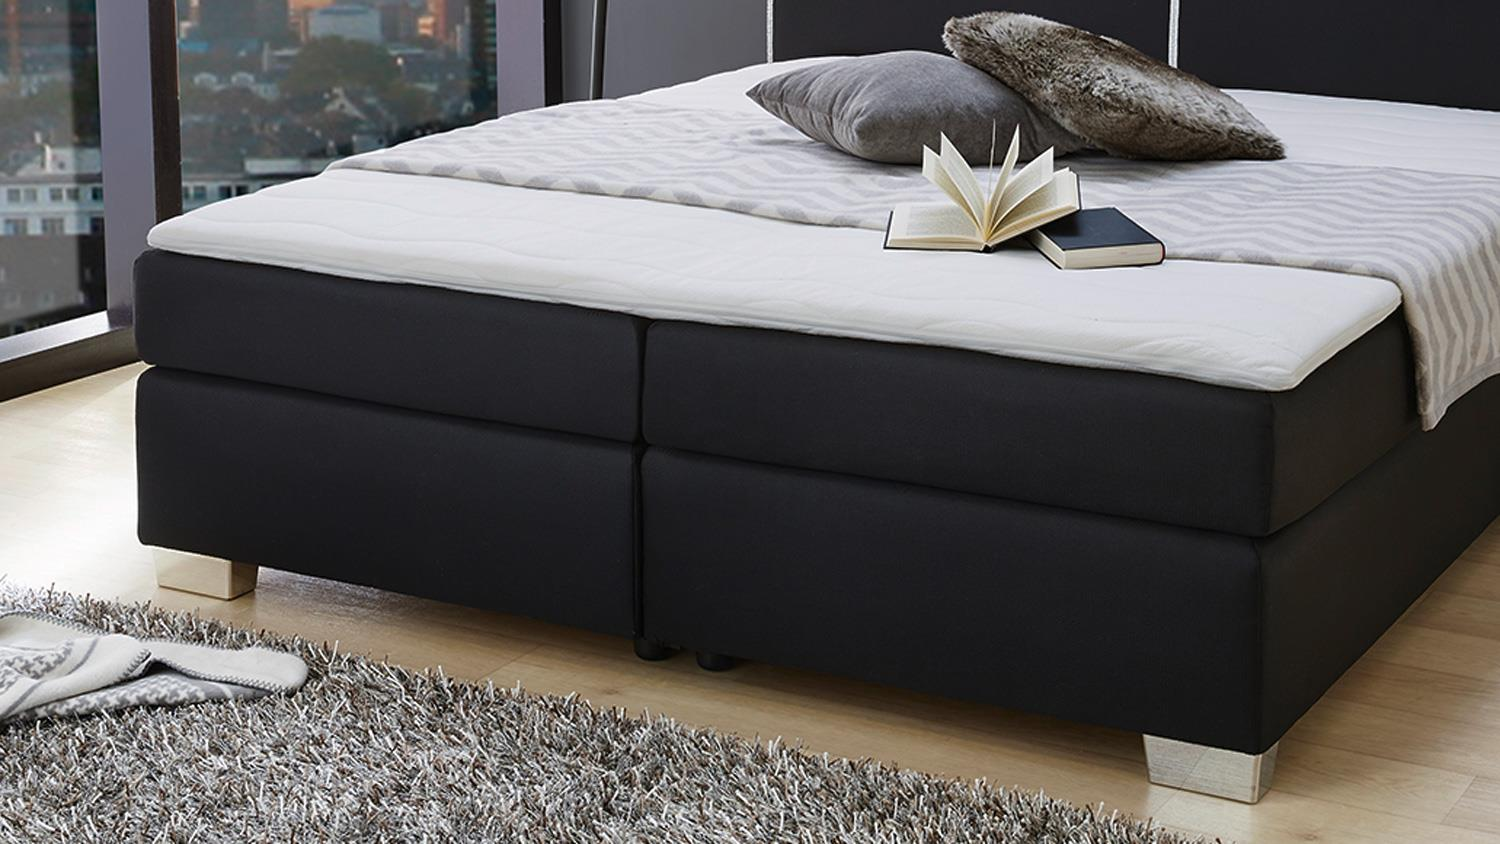 boxspringbett sally bett in schwarz f r schlafzimmer mit topper 180x200. Black Bedroom Furniture Sets. Home Design Ideas